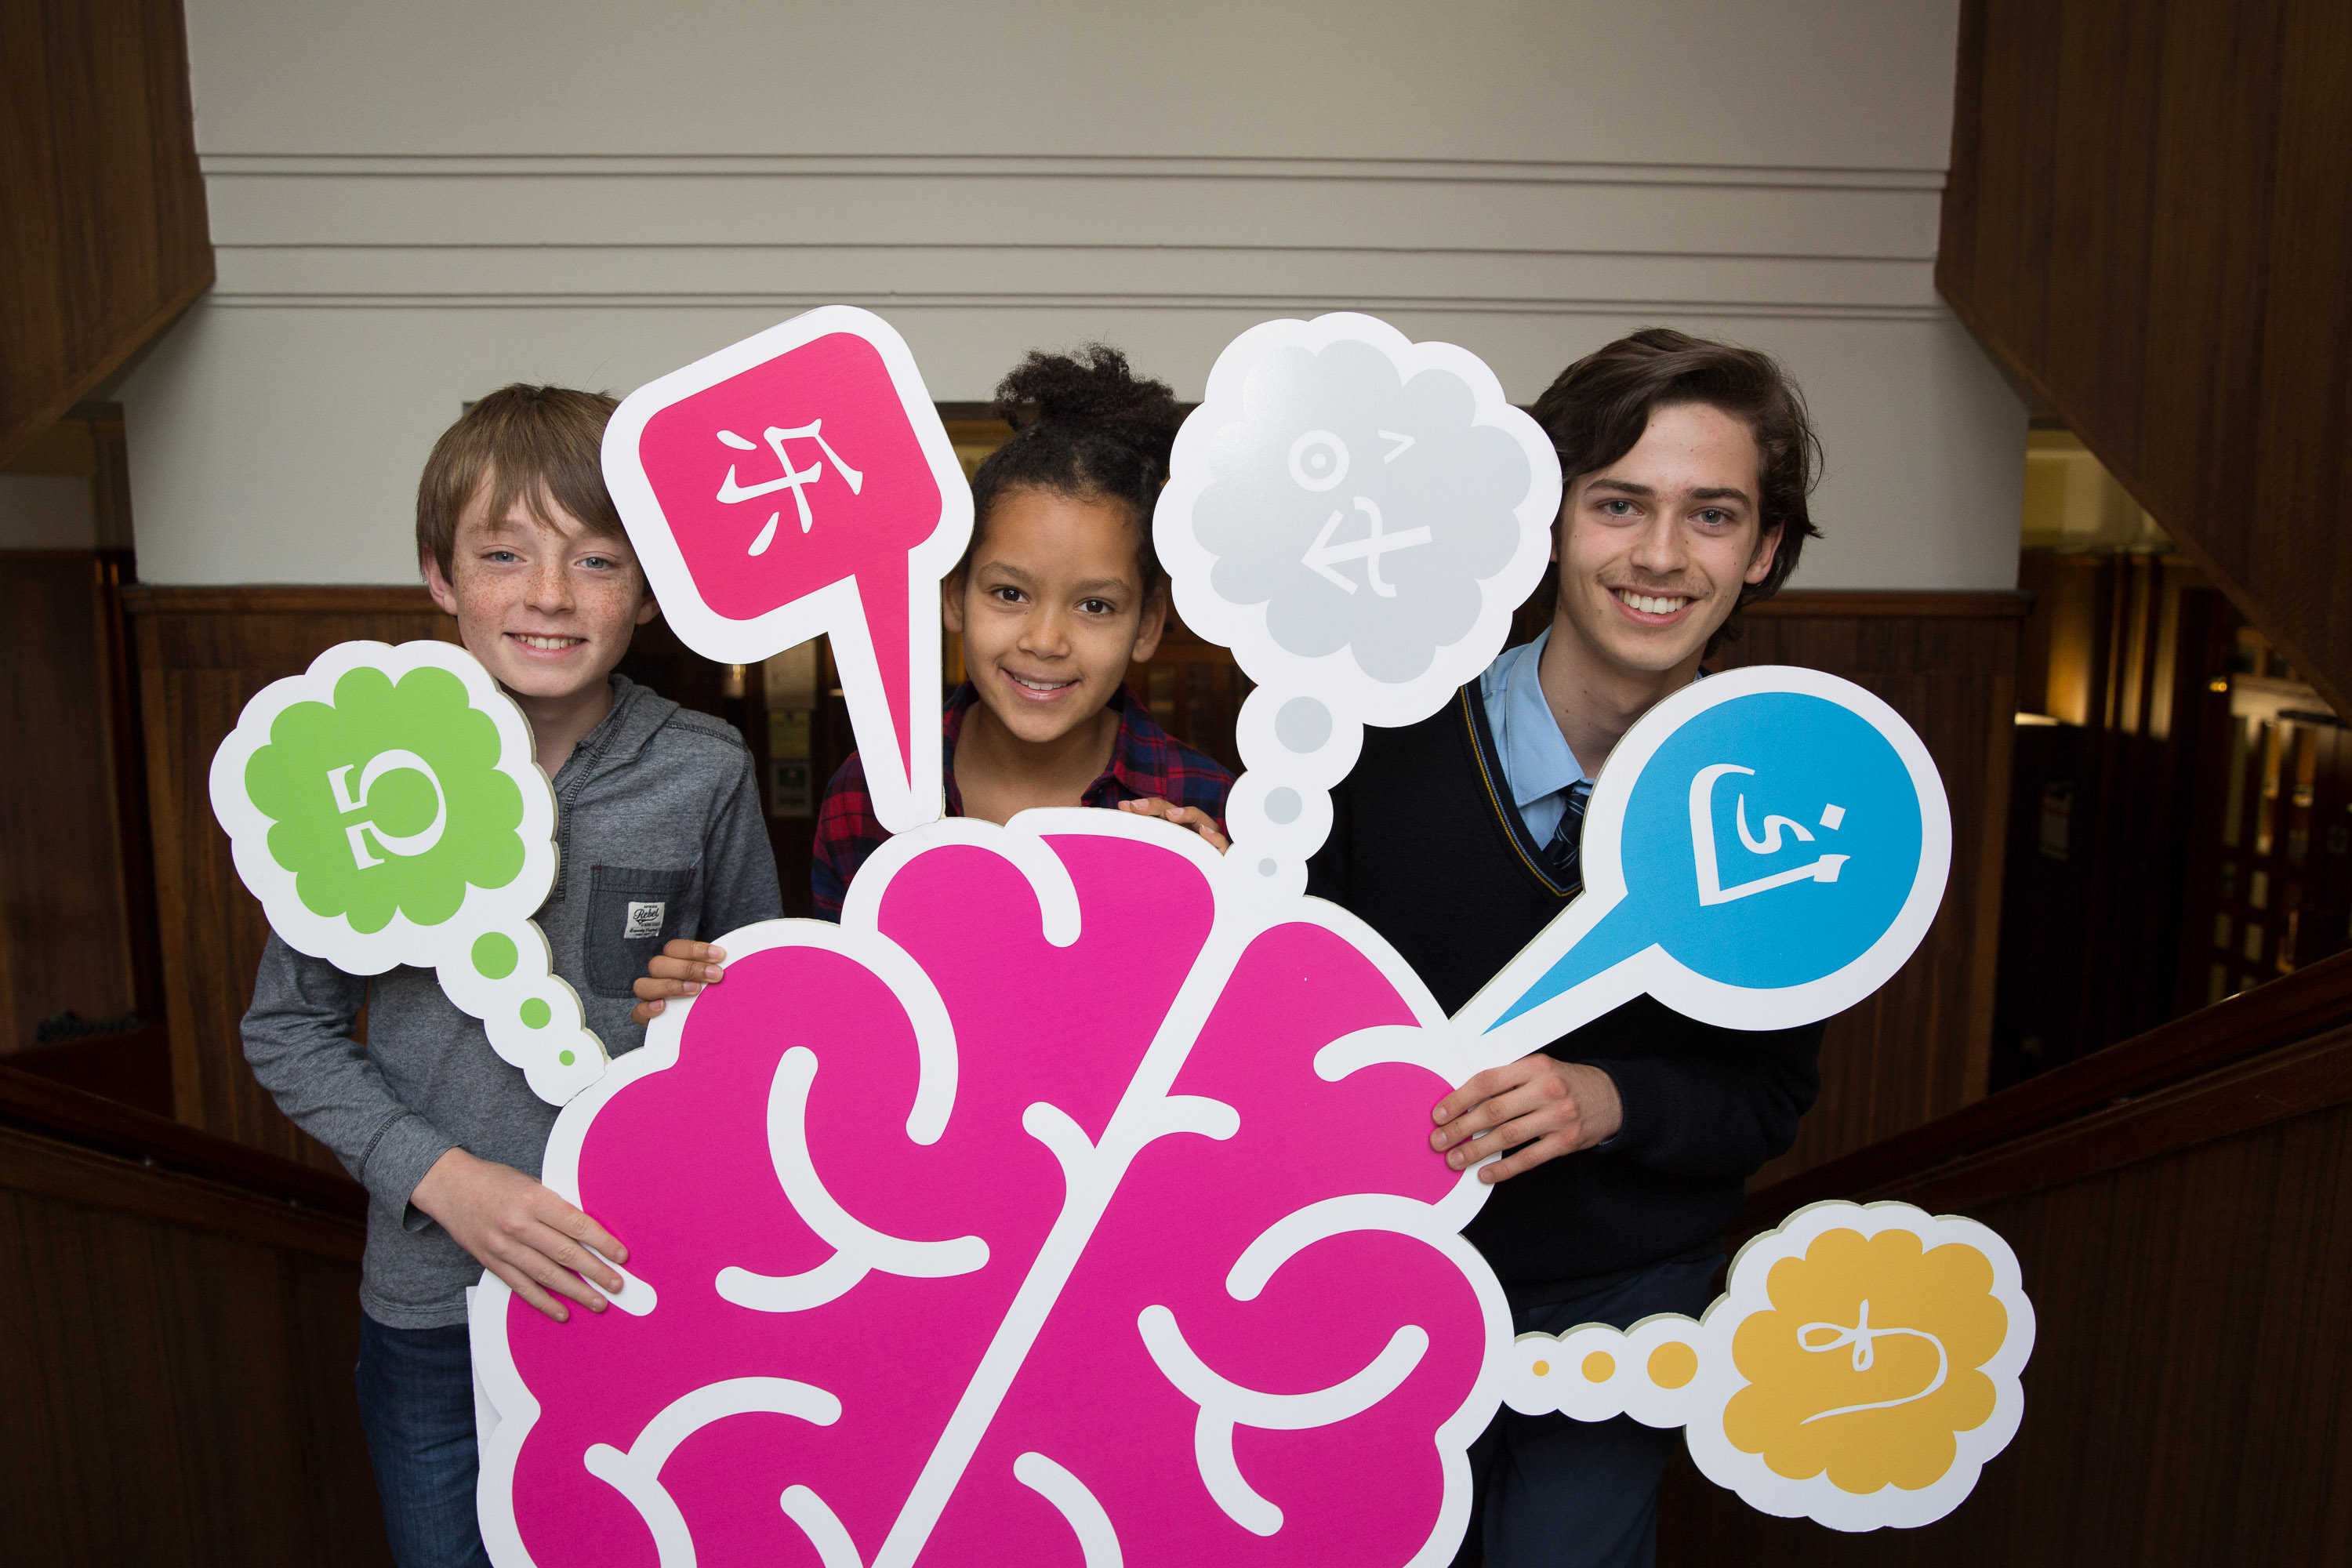 Young students holding cut-out large brain